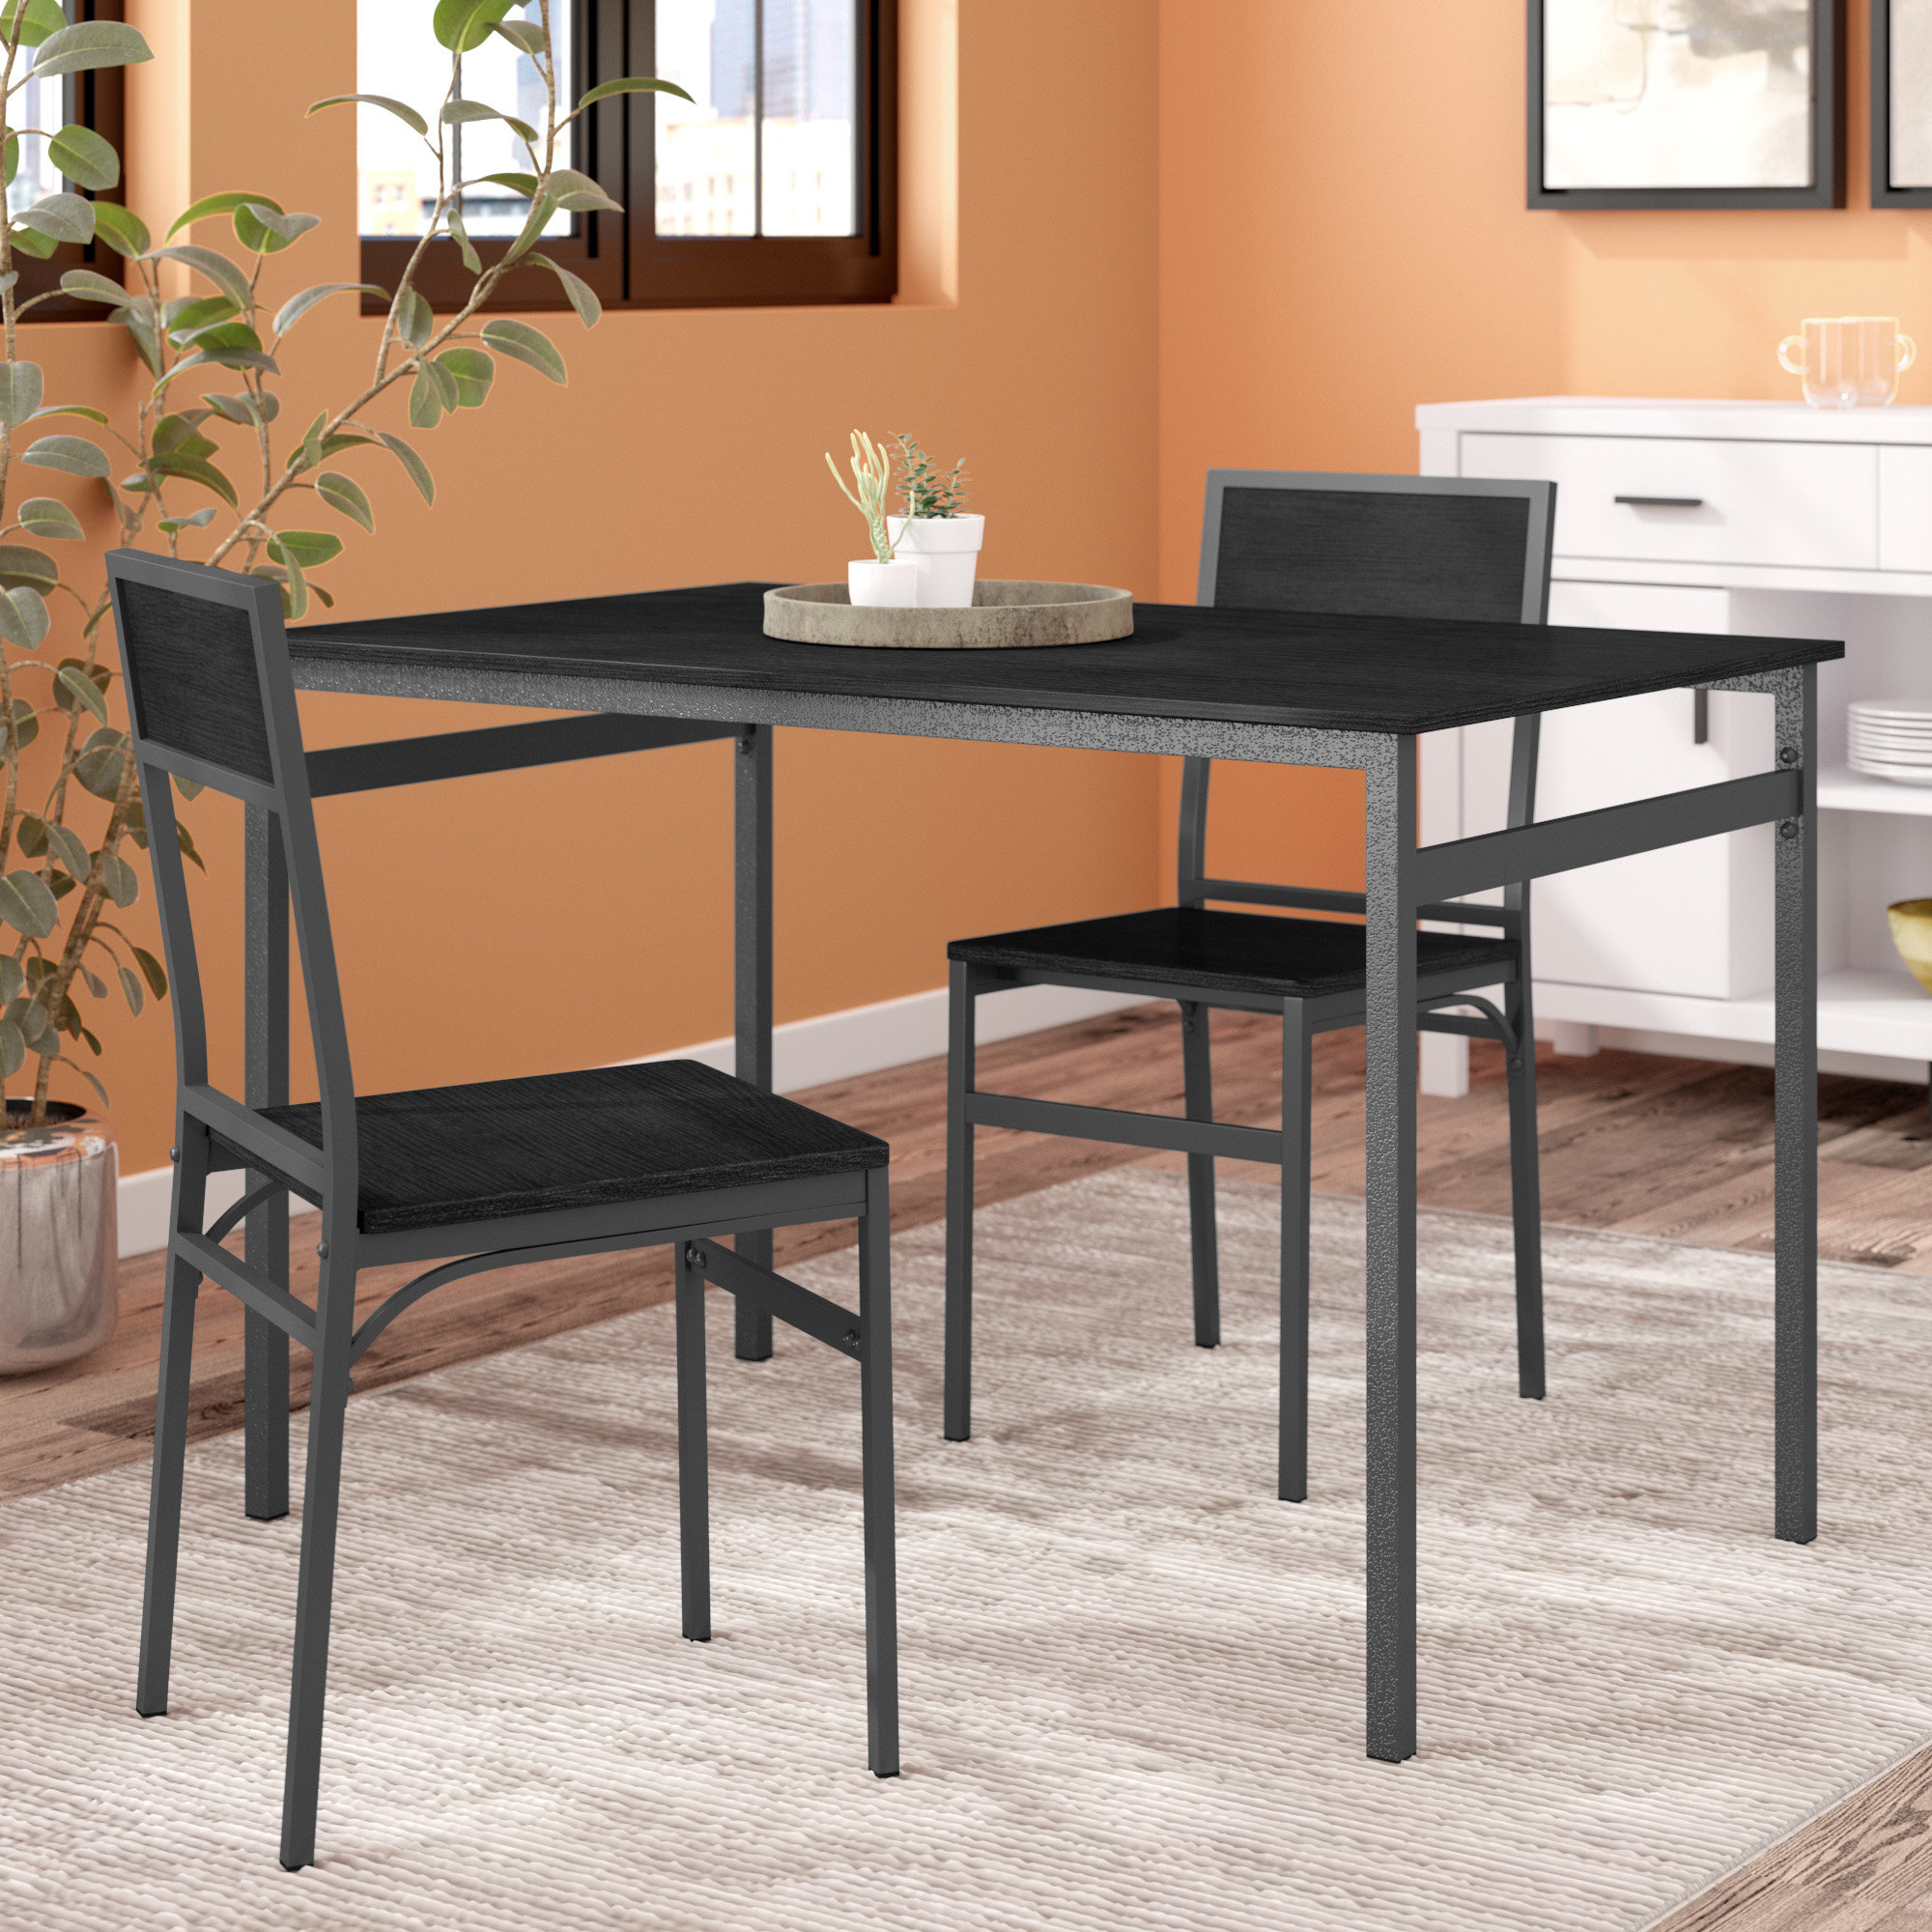 Widely Used Latitude Run Springfield 3 Piece Dining Set & Reviews (View 1 of 20)